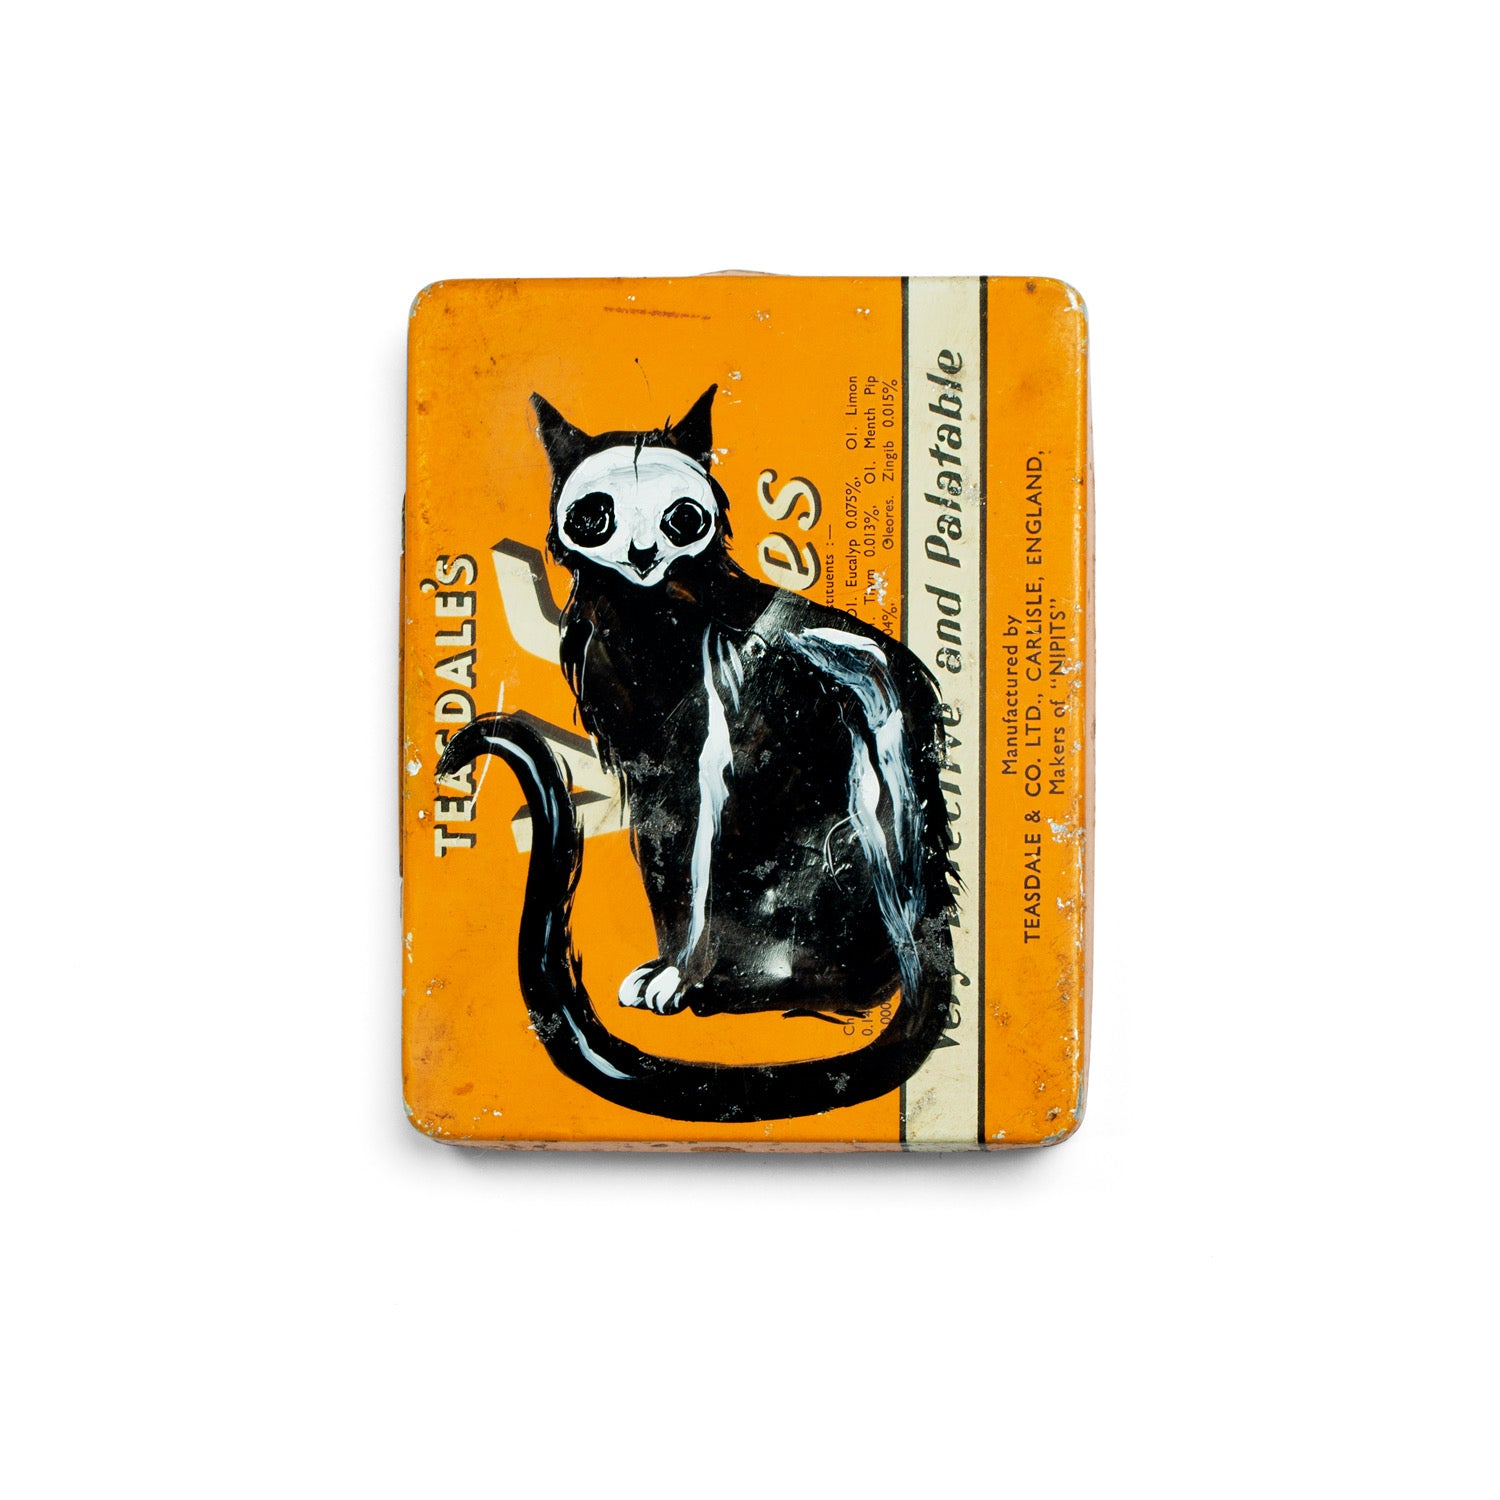 Skelecat keepsake tin